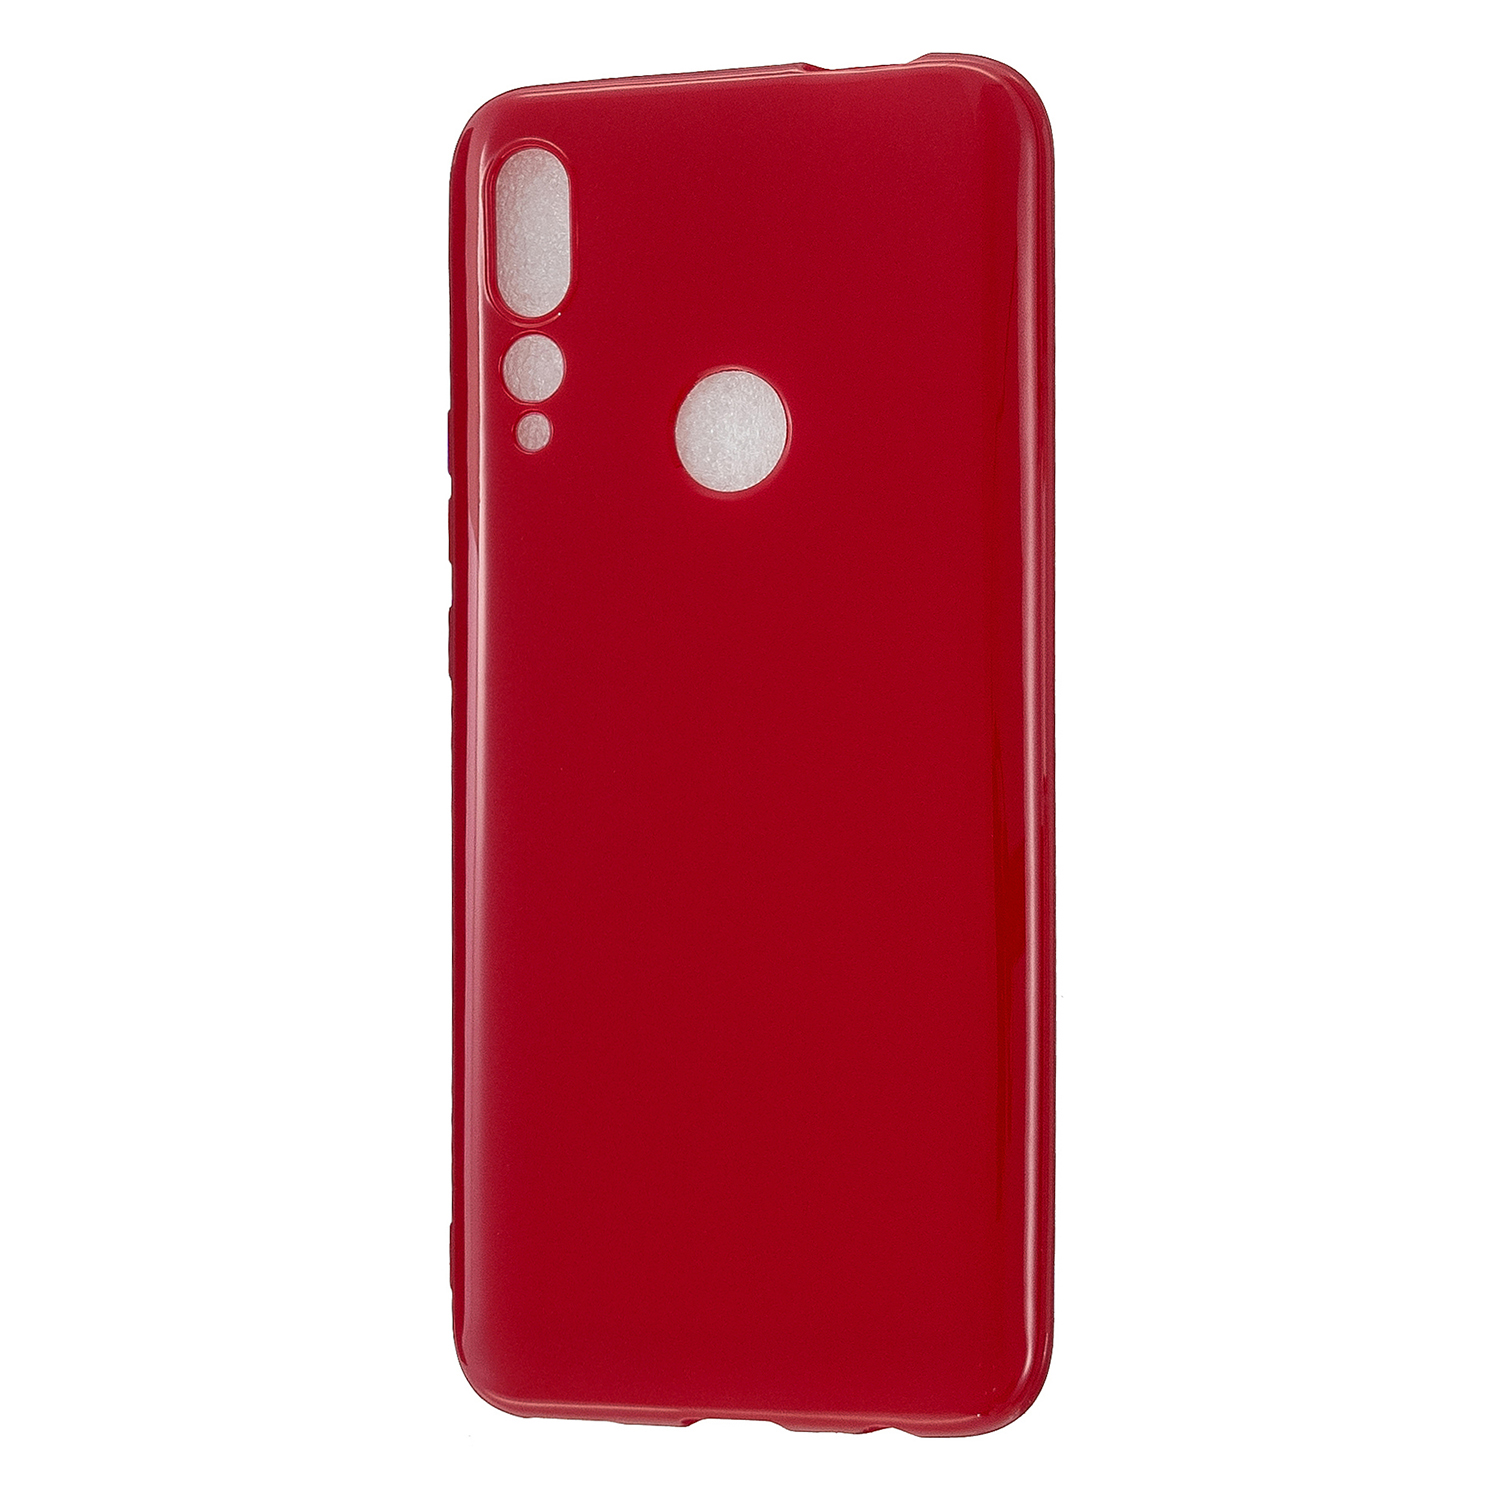 For HUAWEI Y9/Y9 Prime 2019 Cellphone Shell Glossy TPU Case Soft Mobile Phone Cover Full Body Protection Rose red